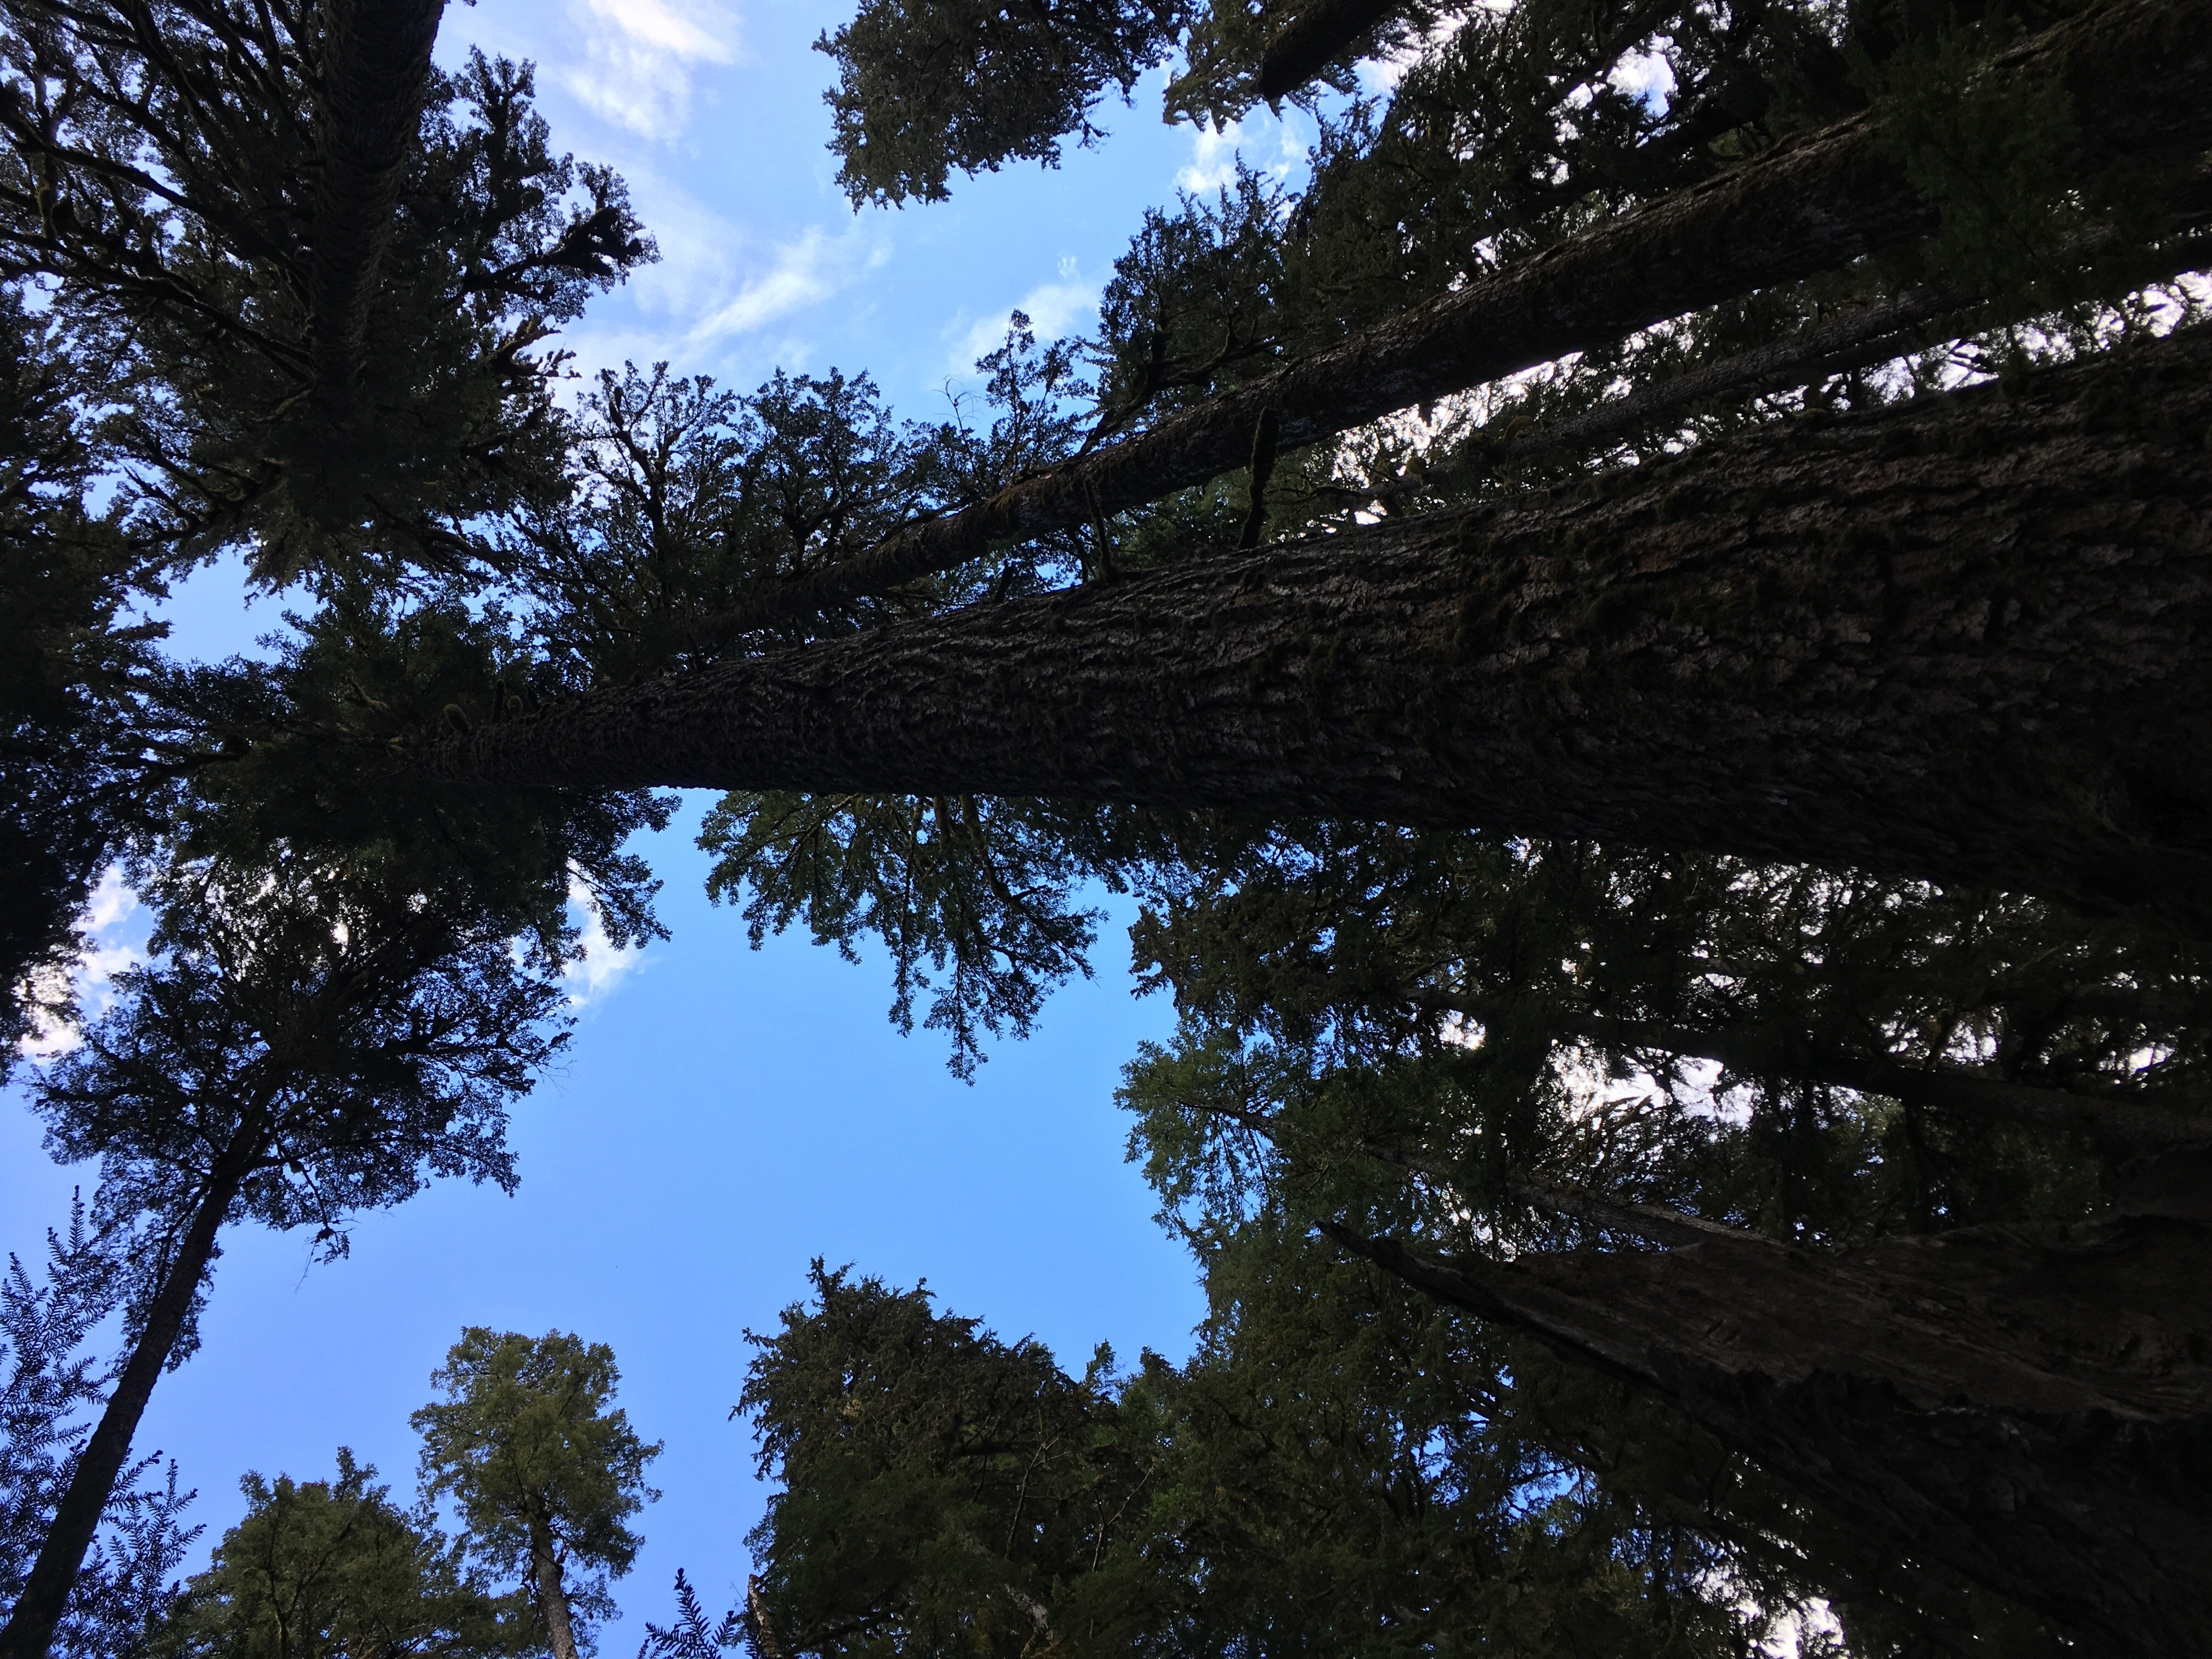 30 Days of Experiencing Nature: Day 3- Take a Hike!